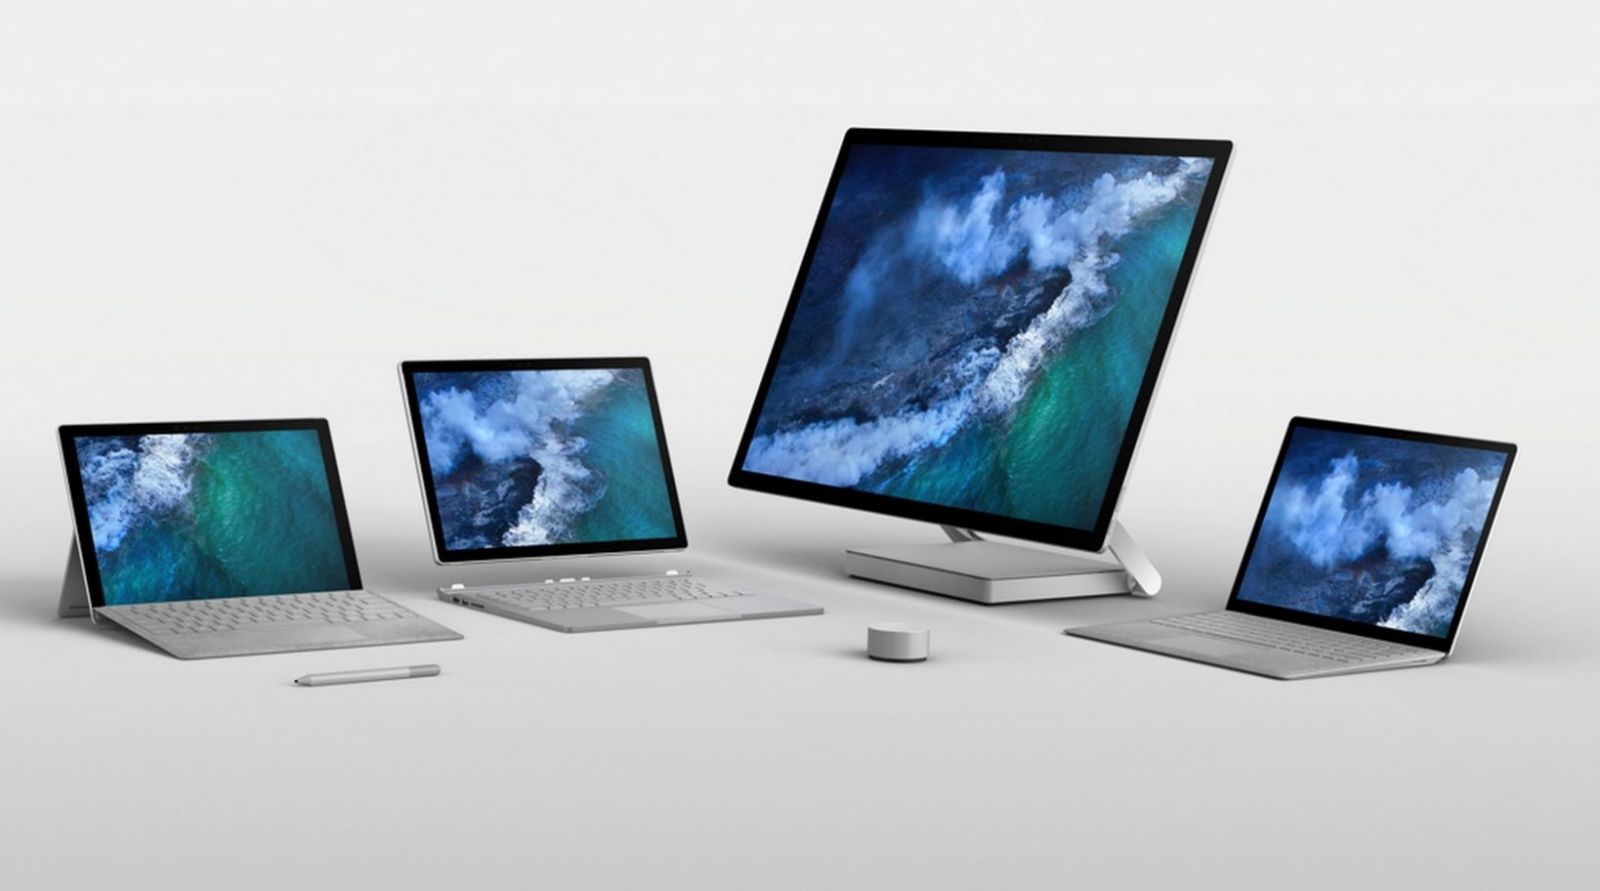 Surface Laptop And New Surface Pro Go On Sale